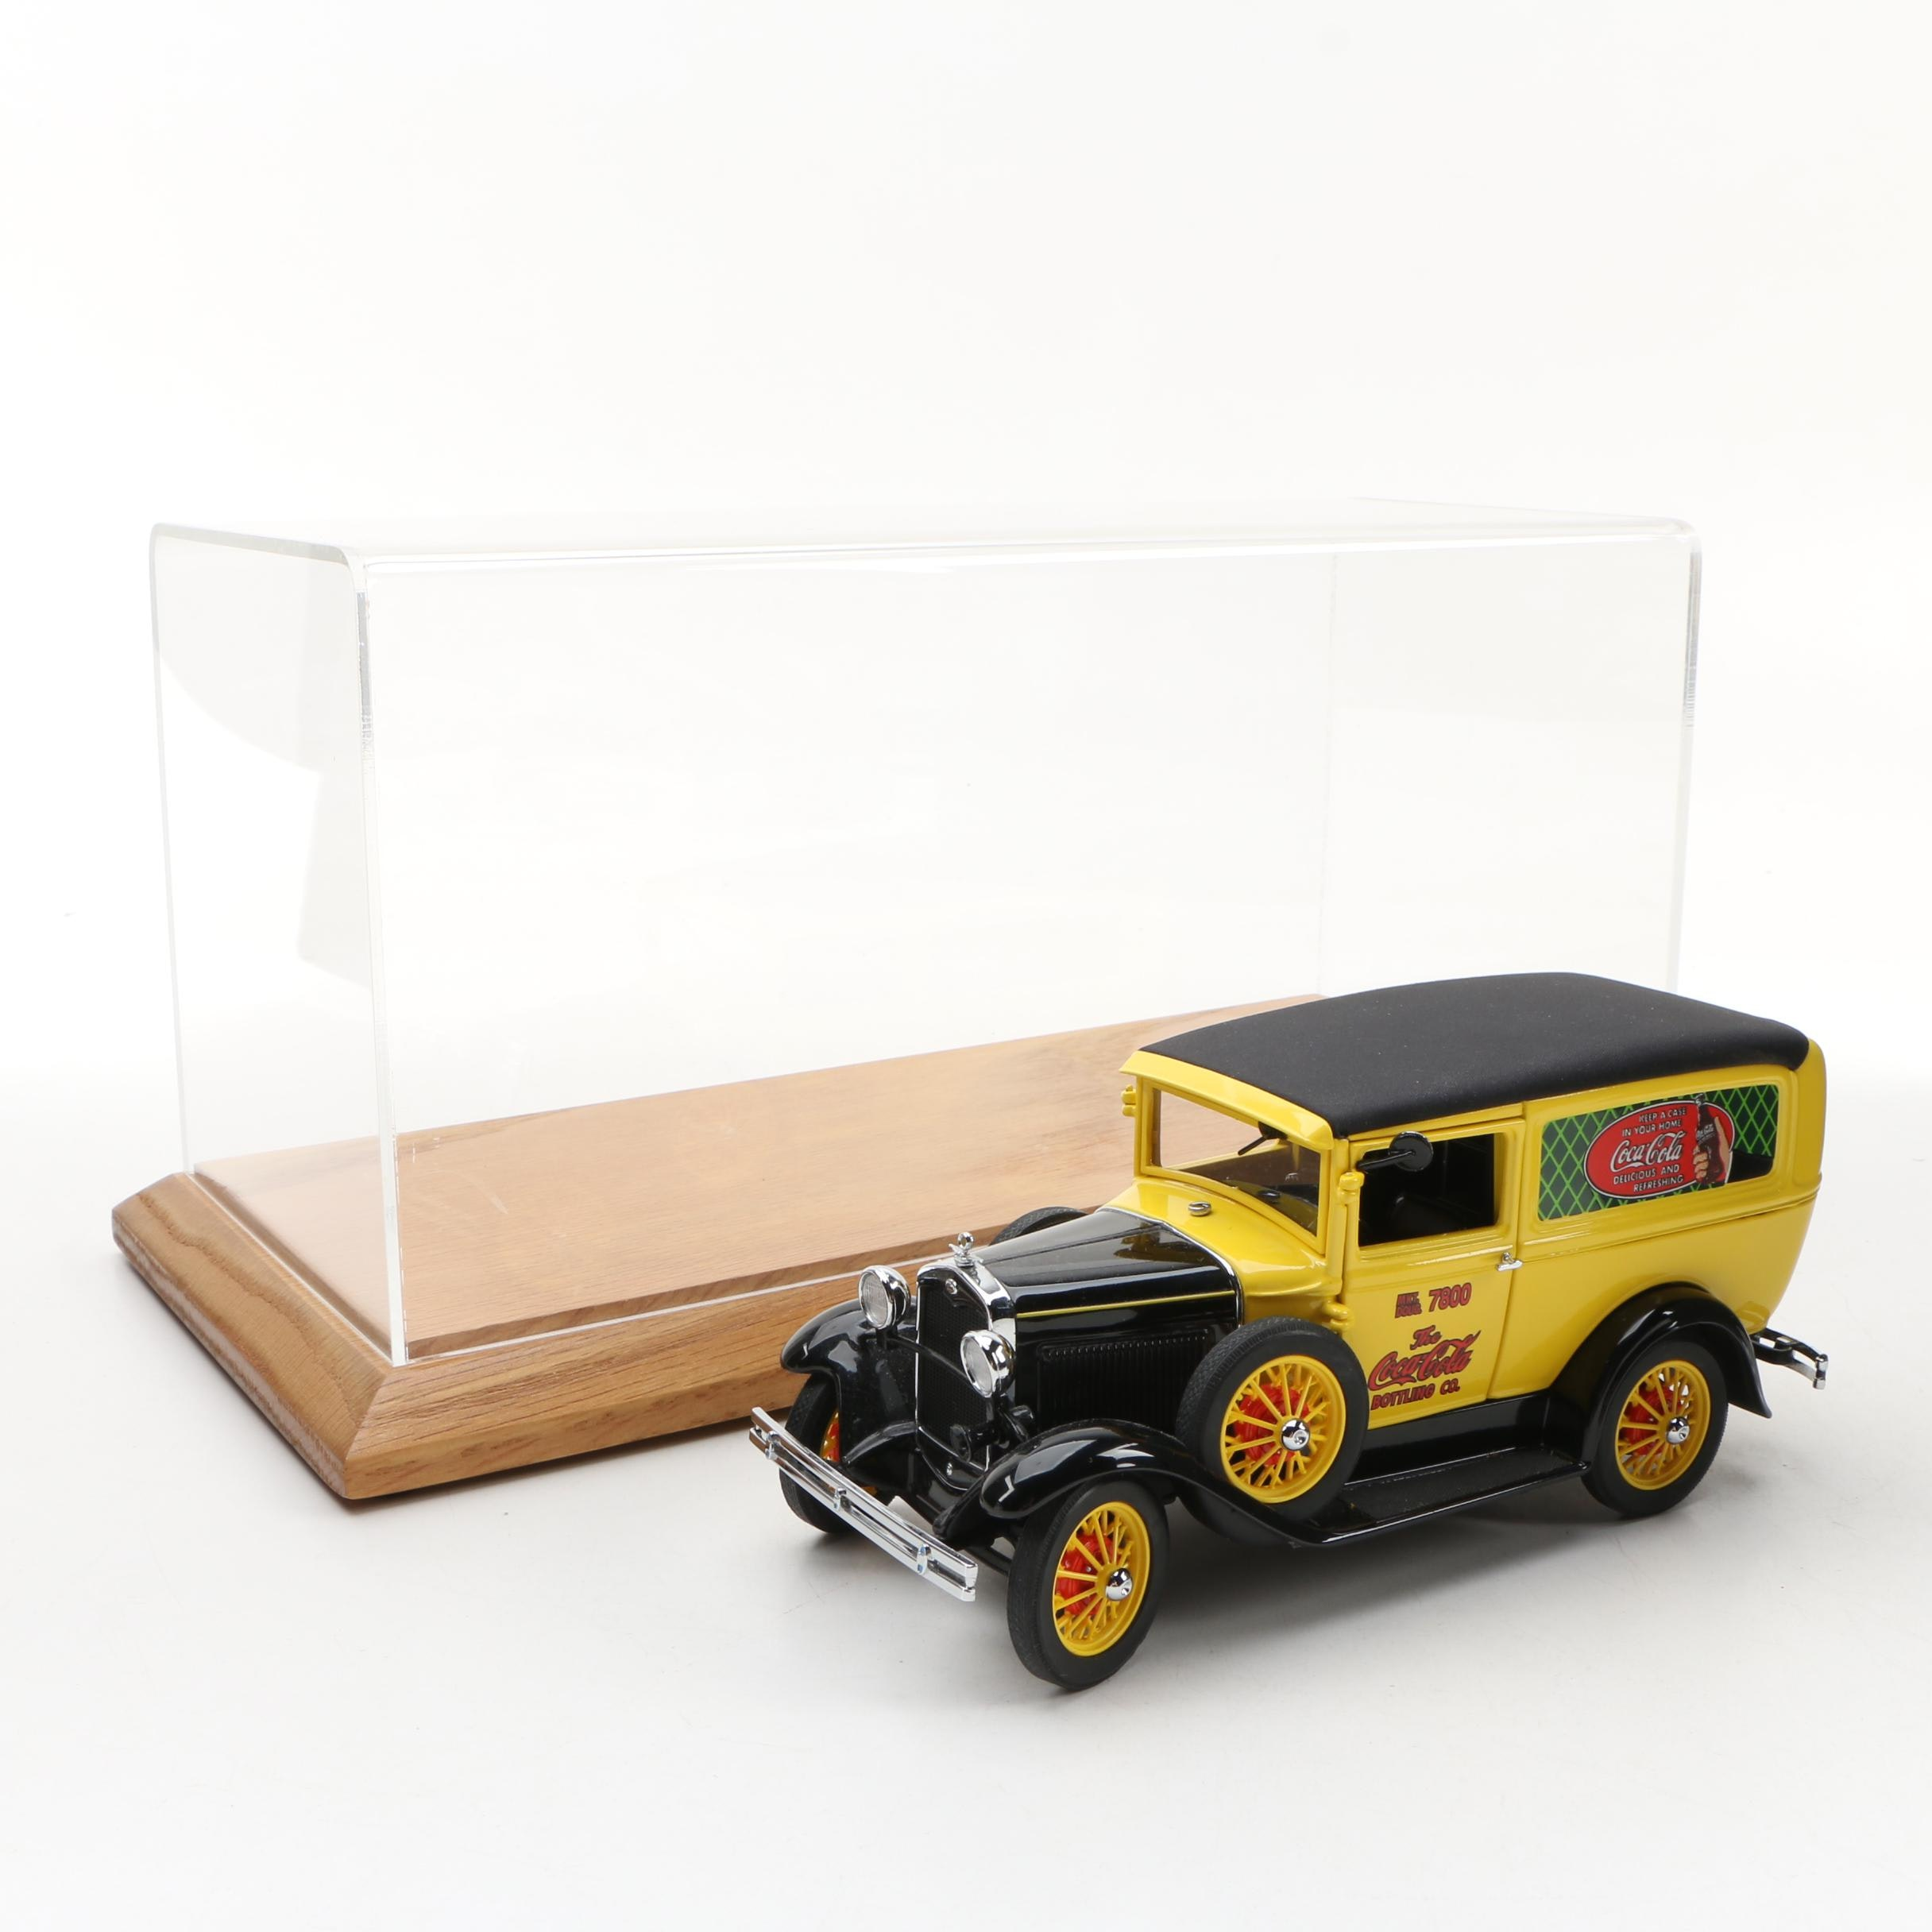 Danbury Mint Die-Cast 1931 Ford Coca-Cola Delivery Truck with Display Case